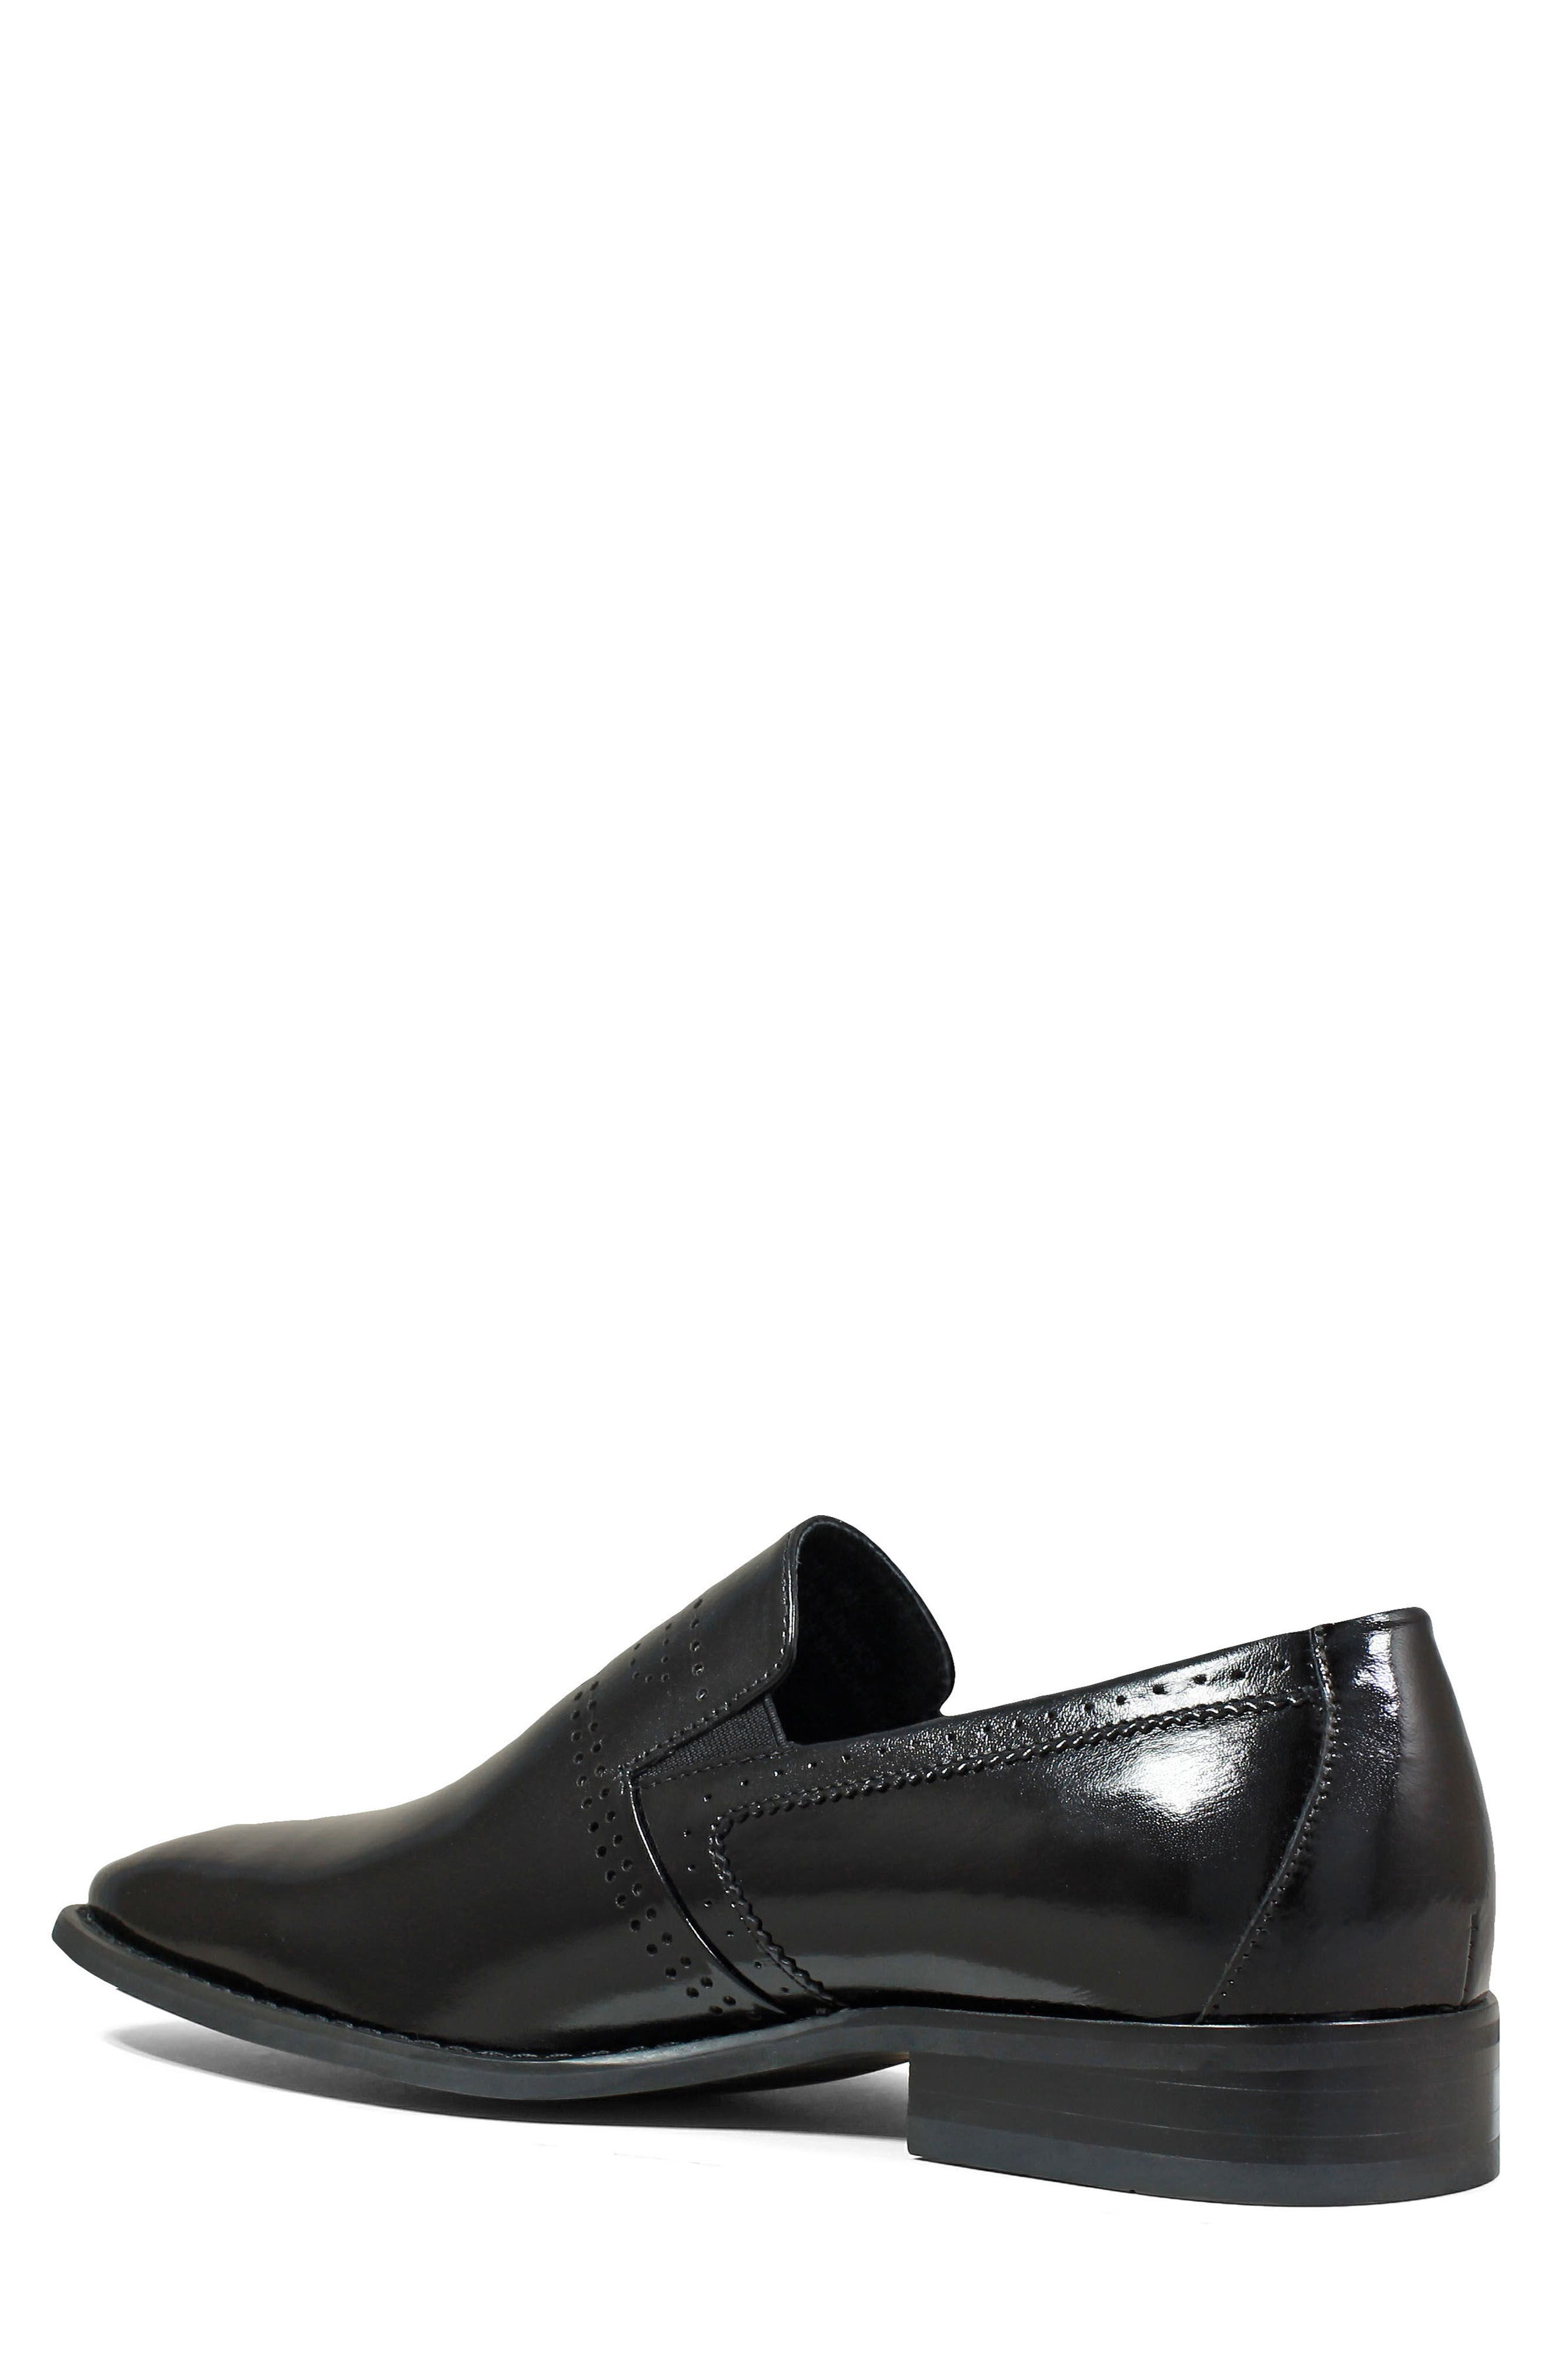 Saunders Perforated Venetian Loafer,                             Alternate thumbnail 2, color,                             BLACK LEATHER